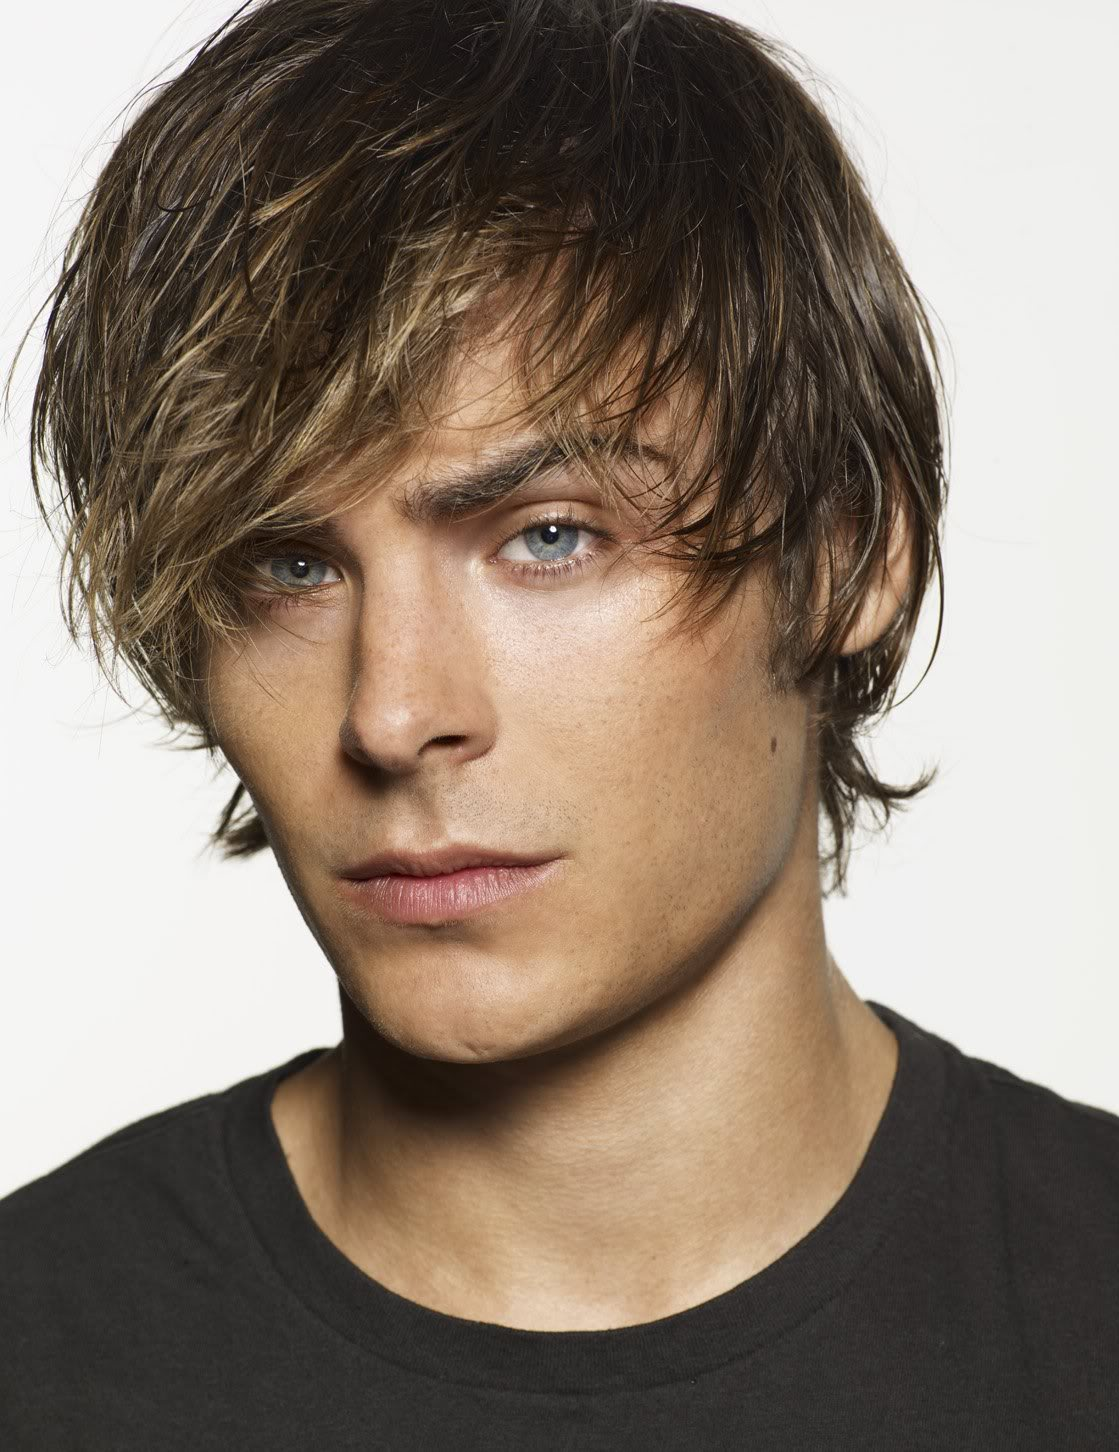 hair styling for boys cool hairstyles for guys you might try 7596